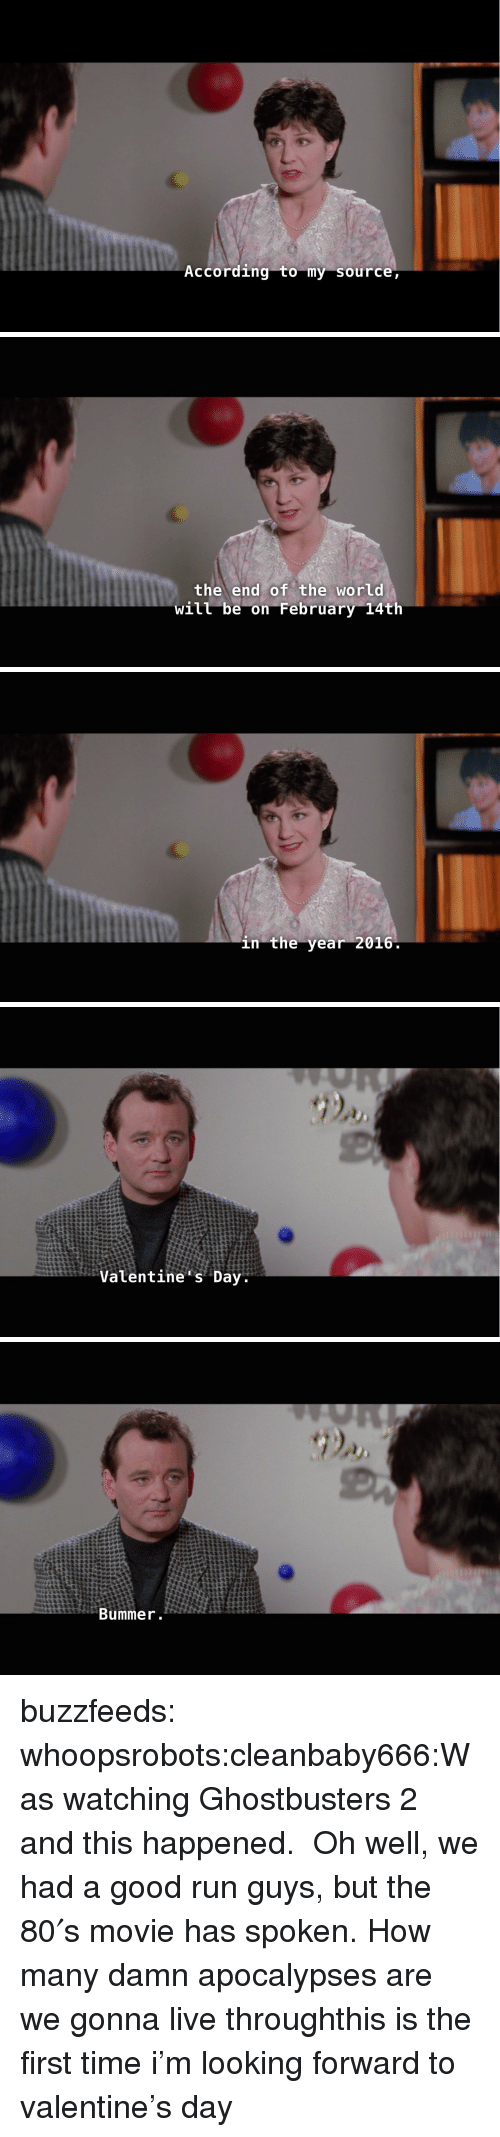 bummer: According to my source   the end of the world  will be on February 14th   in the year 2016   Valentine s Day   Bummer buzzfeeds:  whoopsrobots:cleanbaby666:Was watching Ghostbusters 2 and this happened. Oh well, we had a good run guys, but the 80′s movie has spoken.How many damn apocalypses are we gonna live throughthis is the first time i'm looking forward to valentine's day